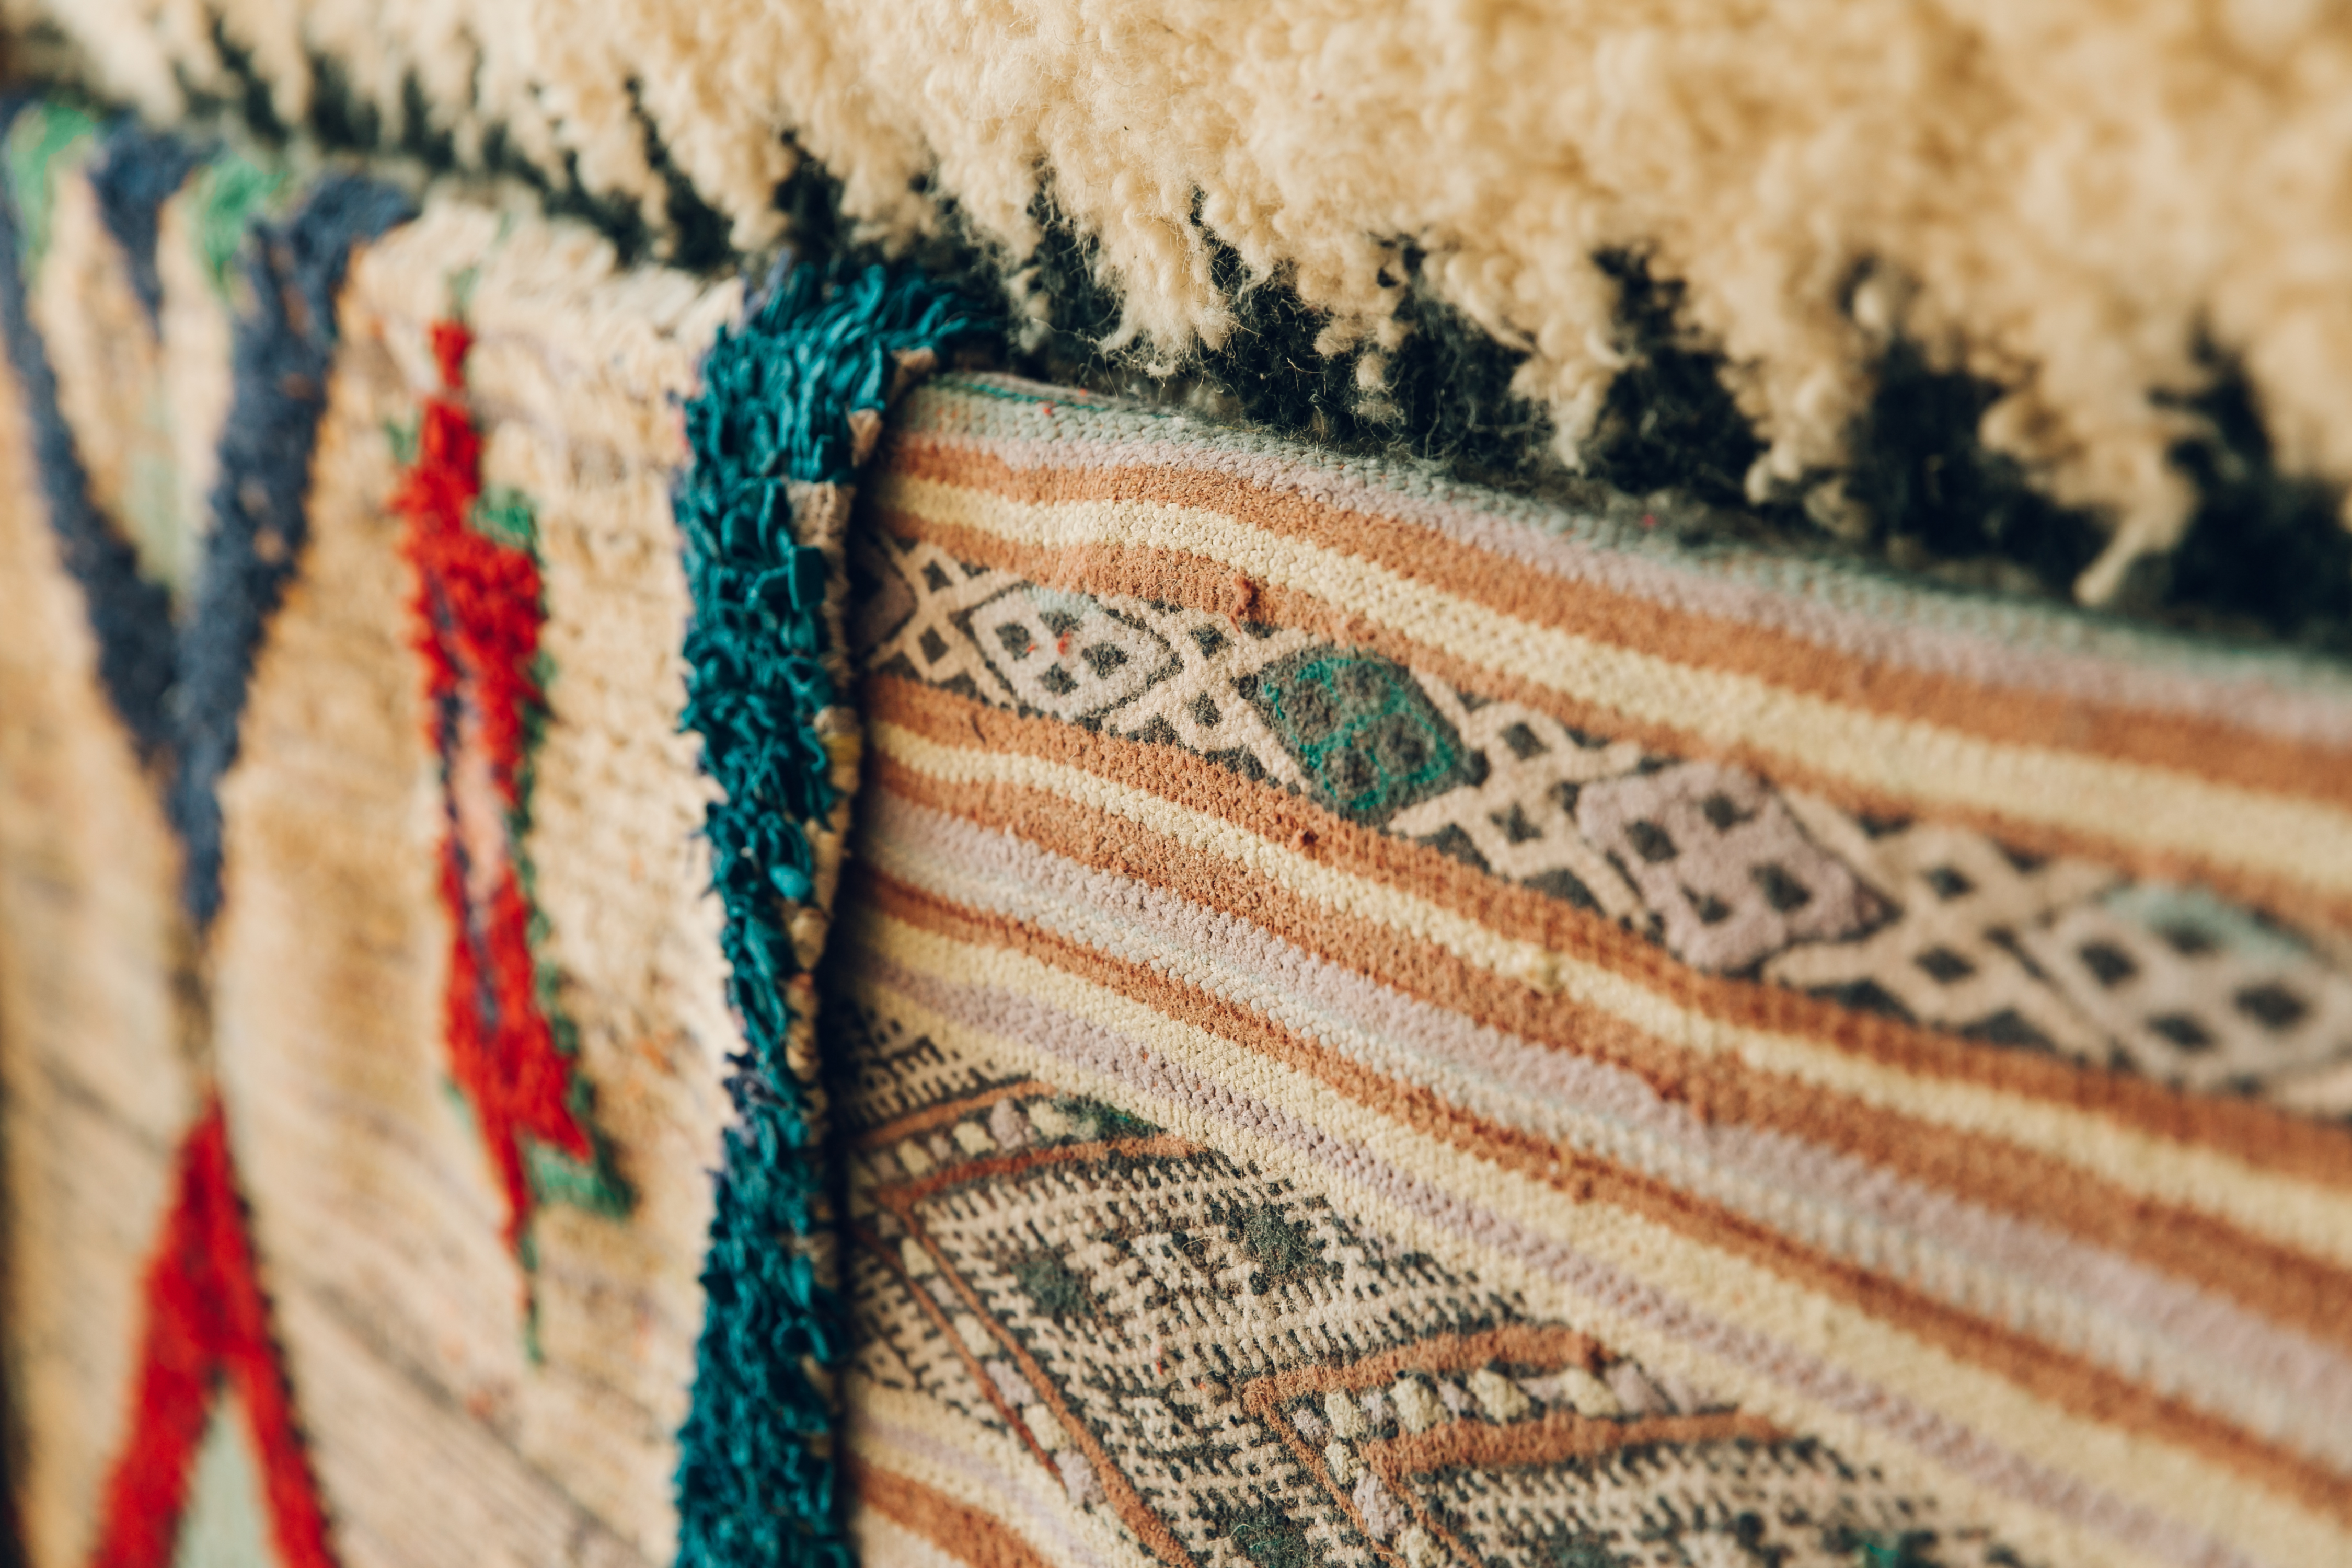 Layered Moroccan rugs add a new pattern